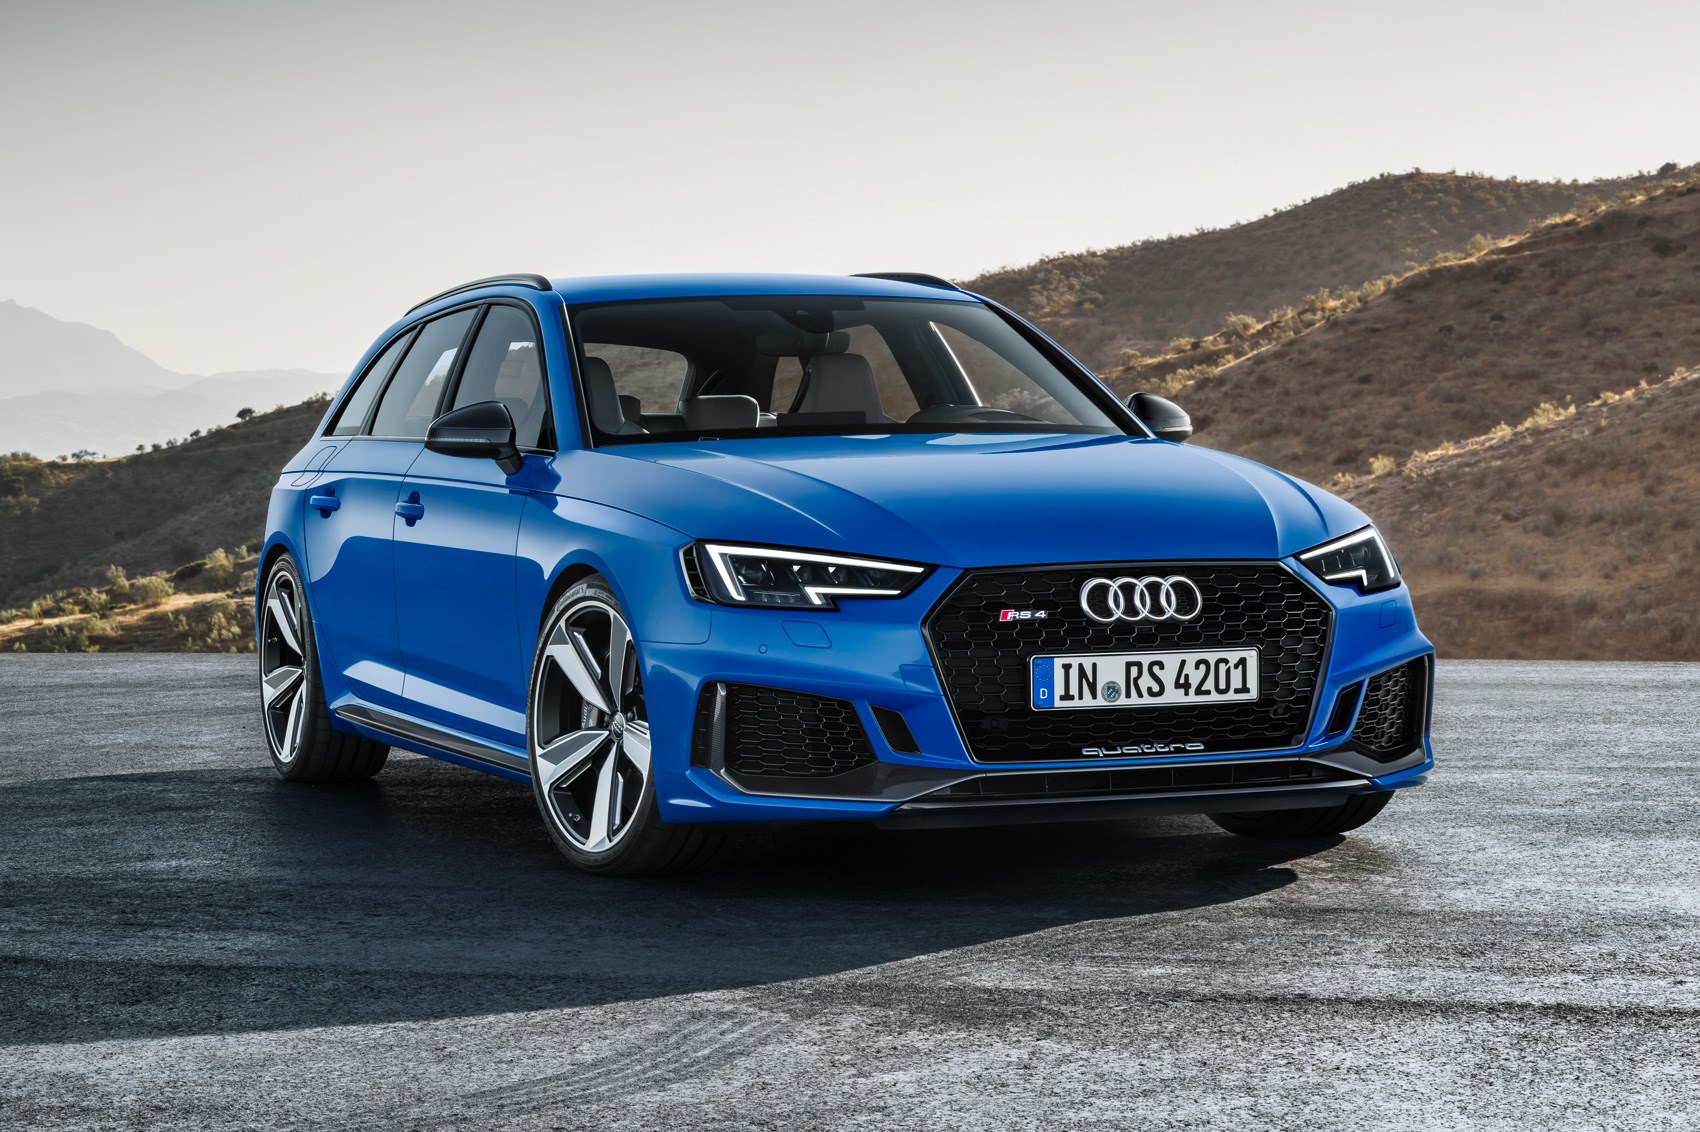 Audi A3 Vs A4 >> New (e)state of mind: Audi pulls covers off new RS4 Avant by CAR Magazine